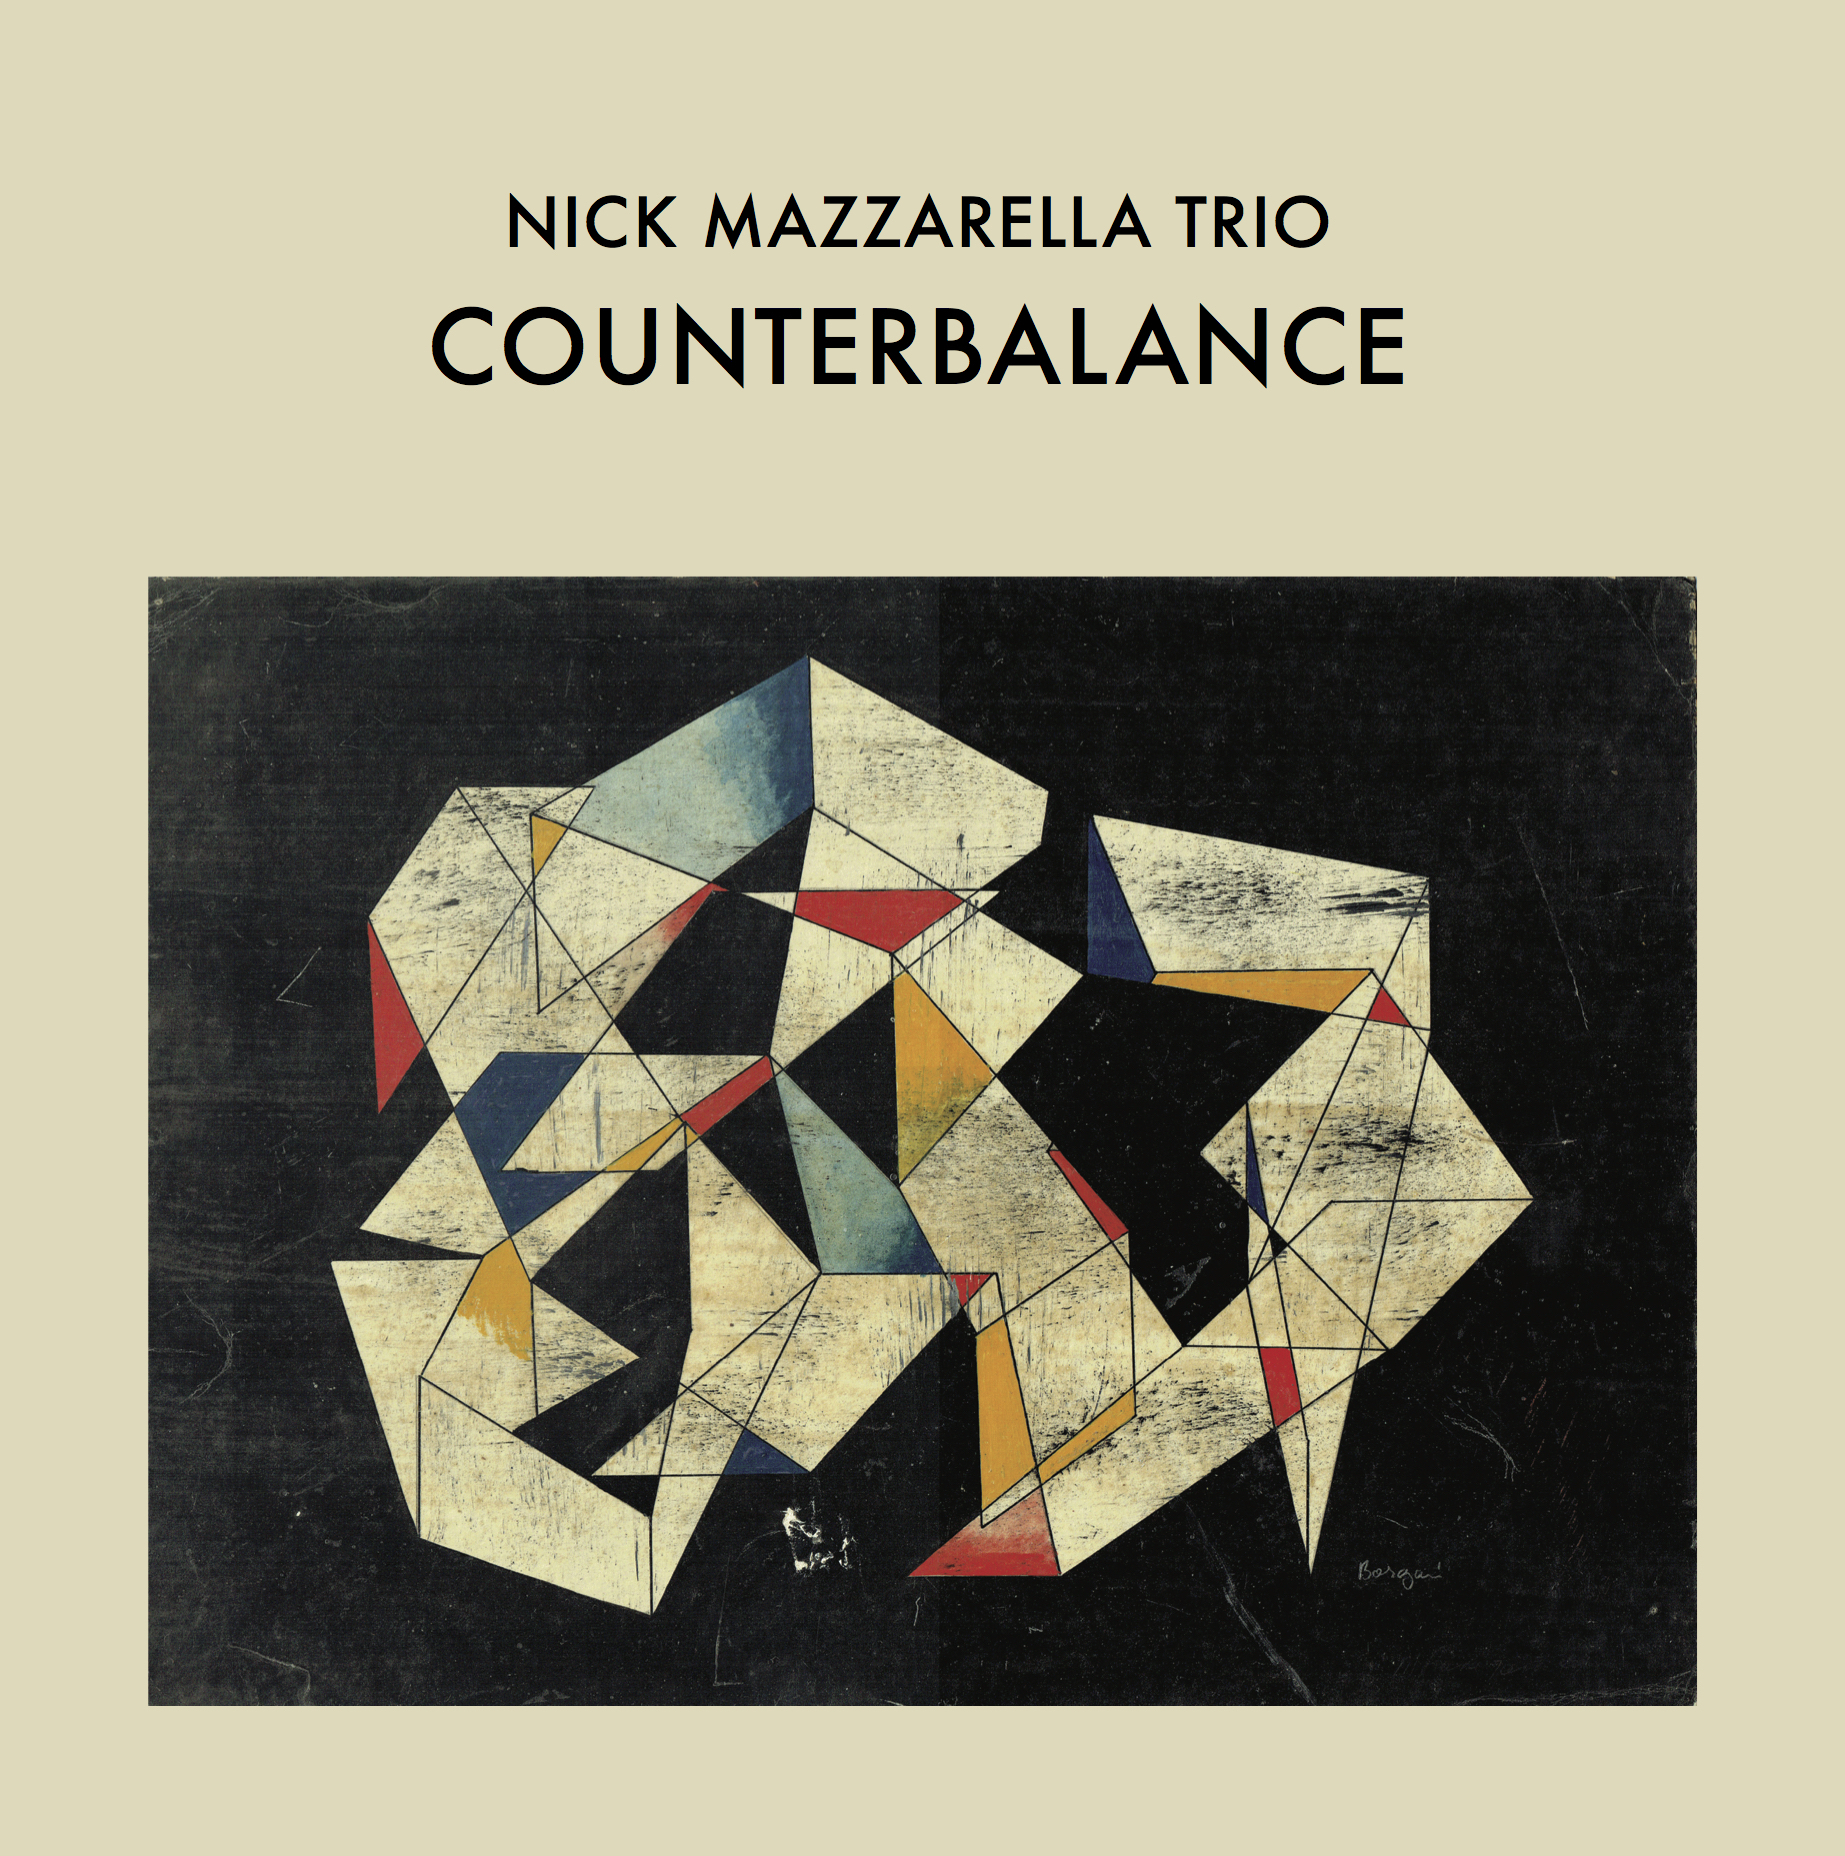 Nick Mazzarella Trio — Counterbalance